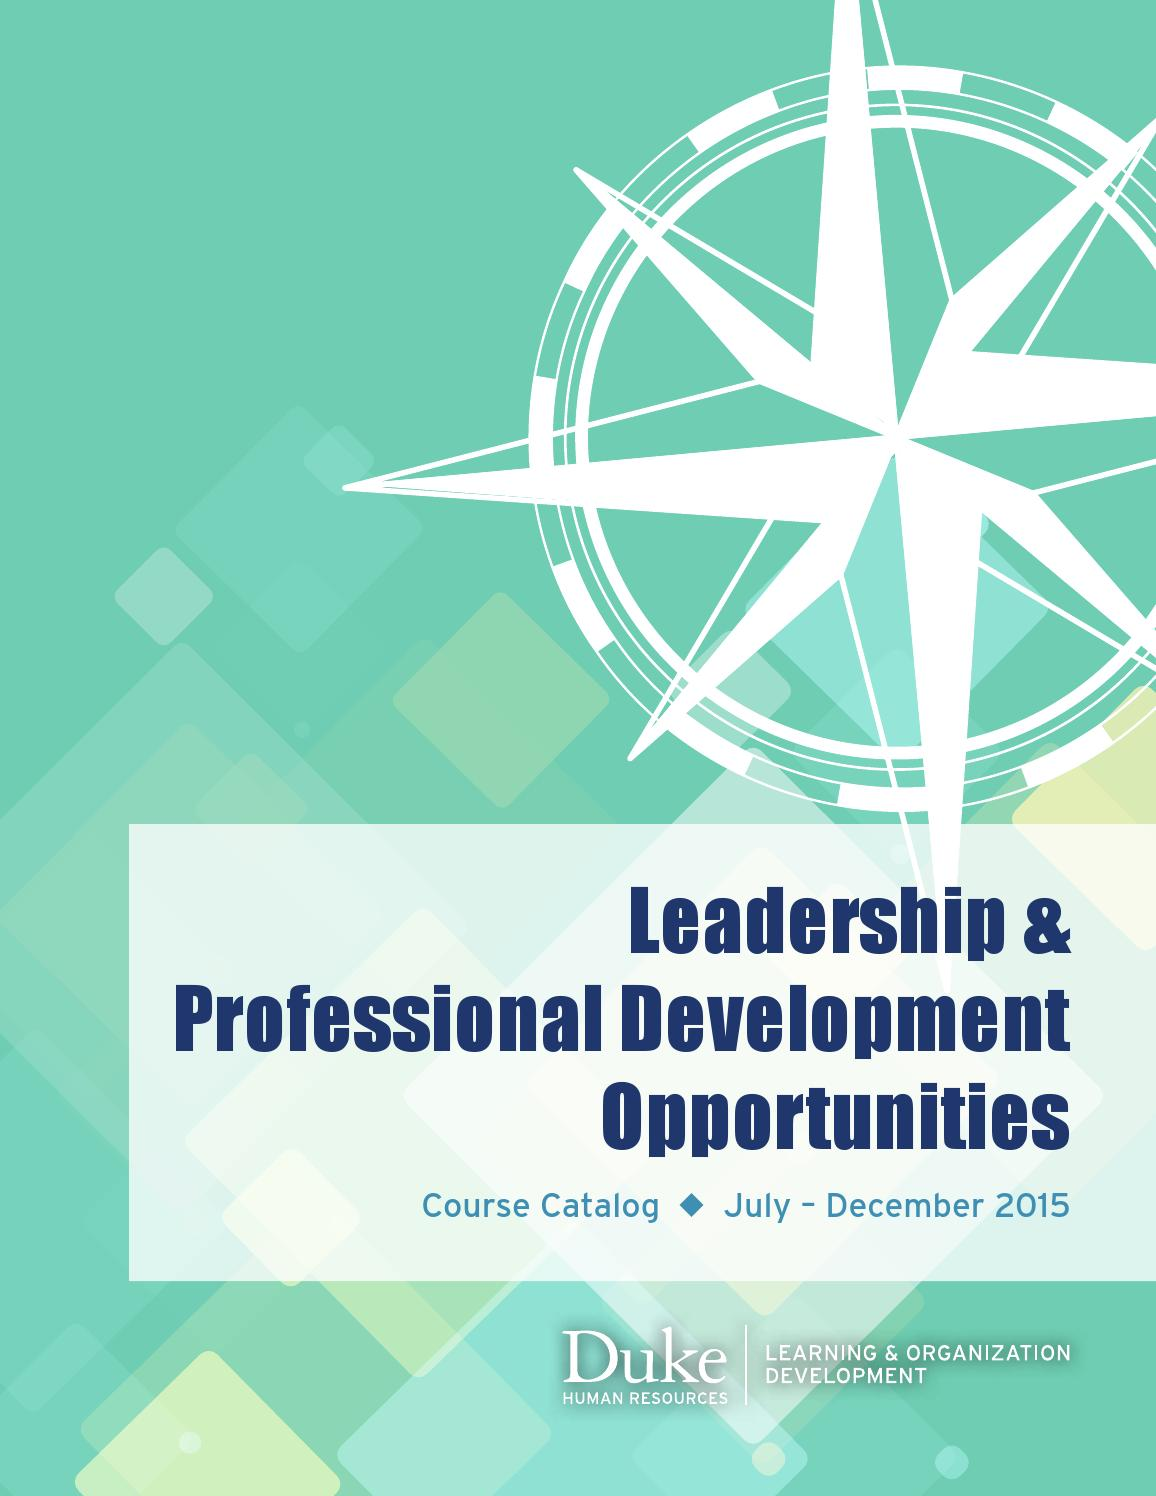 Leadership & Professional Development Opportunities By. Free Website Store Builder One Stop Insurance. Phoenix School Of Nursing Forward Your Phone. Solar Energy Charlotte Nc Print Postcards Nyc. Discovery Education United Streaming. Americhoice United Health Care. Online Dietician Degree Restylane And Perlane. 0 Percent On Balance Transfers. What Is The Cheapest Pet Insurance